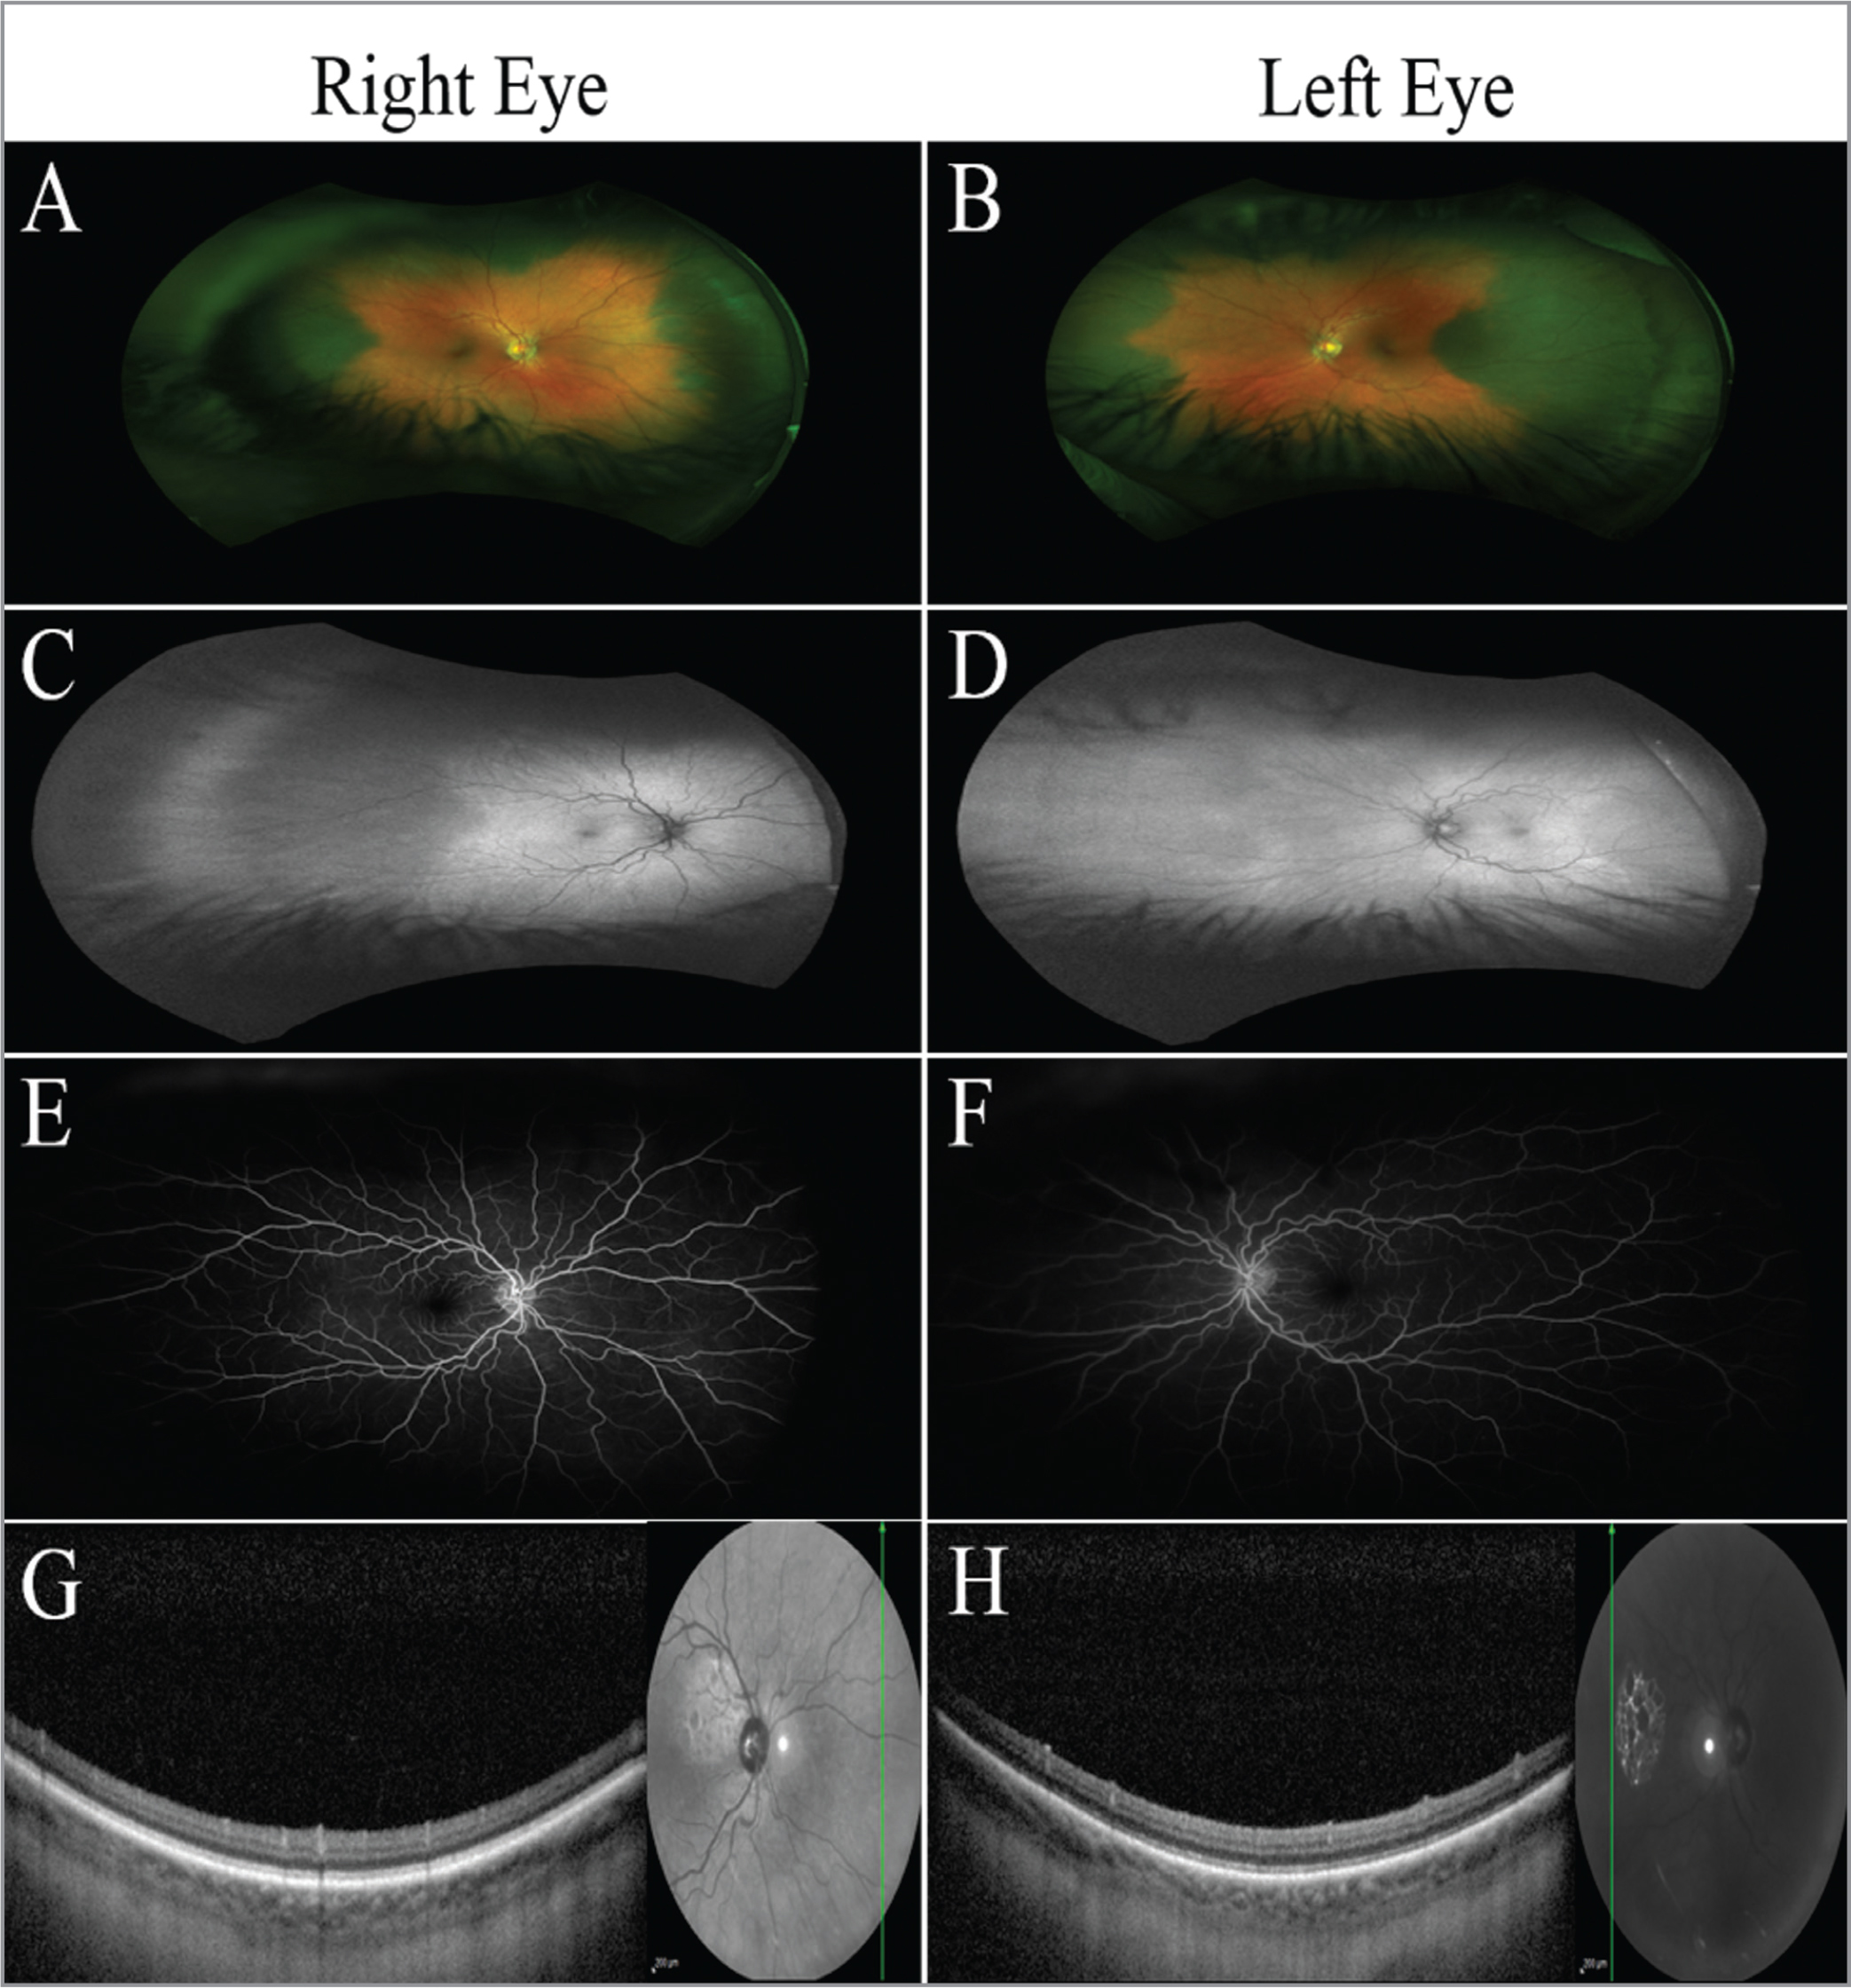 Color fundus photographs demonstrated diffuse bilateral choroidal hyperpigmentation in an annular pattern (A, B). Fundus autofluorescence imaging demonstrated a lack of retinal autofluorescence (C, D). Fluorescein angiograms displayed normal vessel patterns without hyperfluorescence in pigmented regions (E, F). Optical coherence tomography of the peripheral retina showed normal choroidal thickness and architecture in both affected and unaffected regions. The overlying retina appeared normal, and there is no subretinal fluid (G, H).